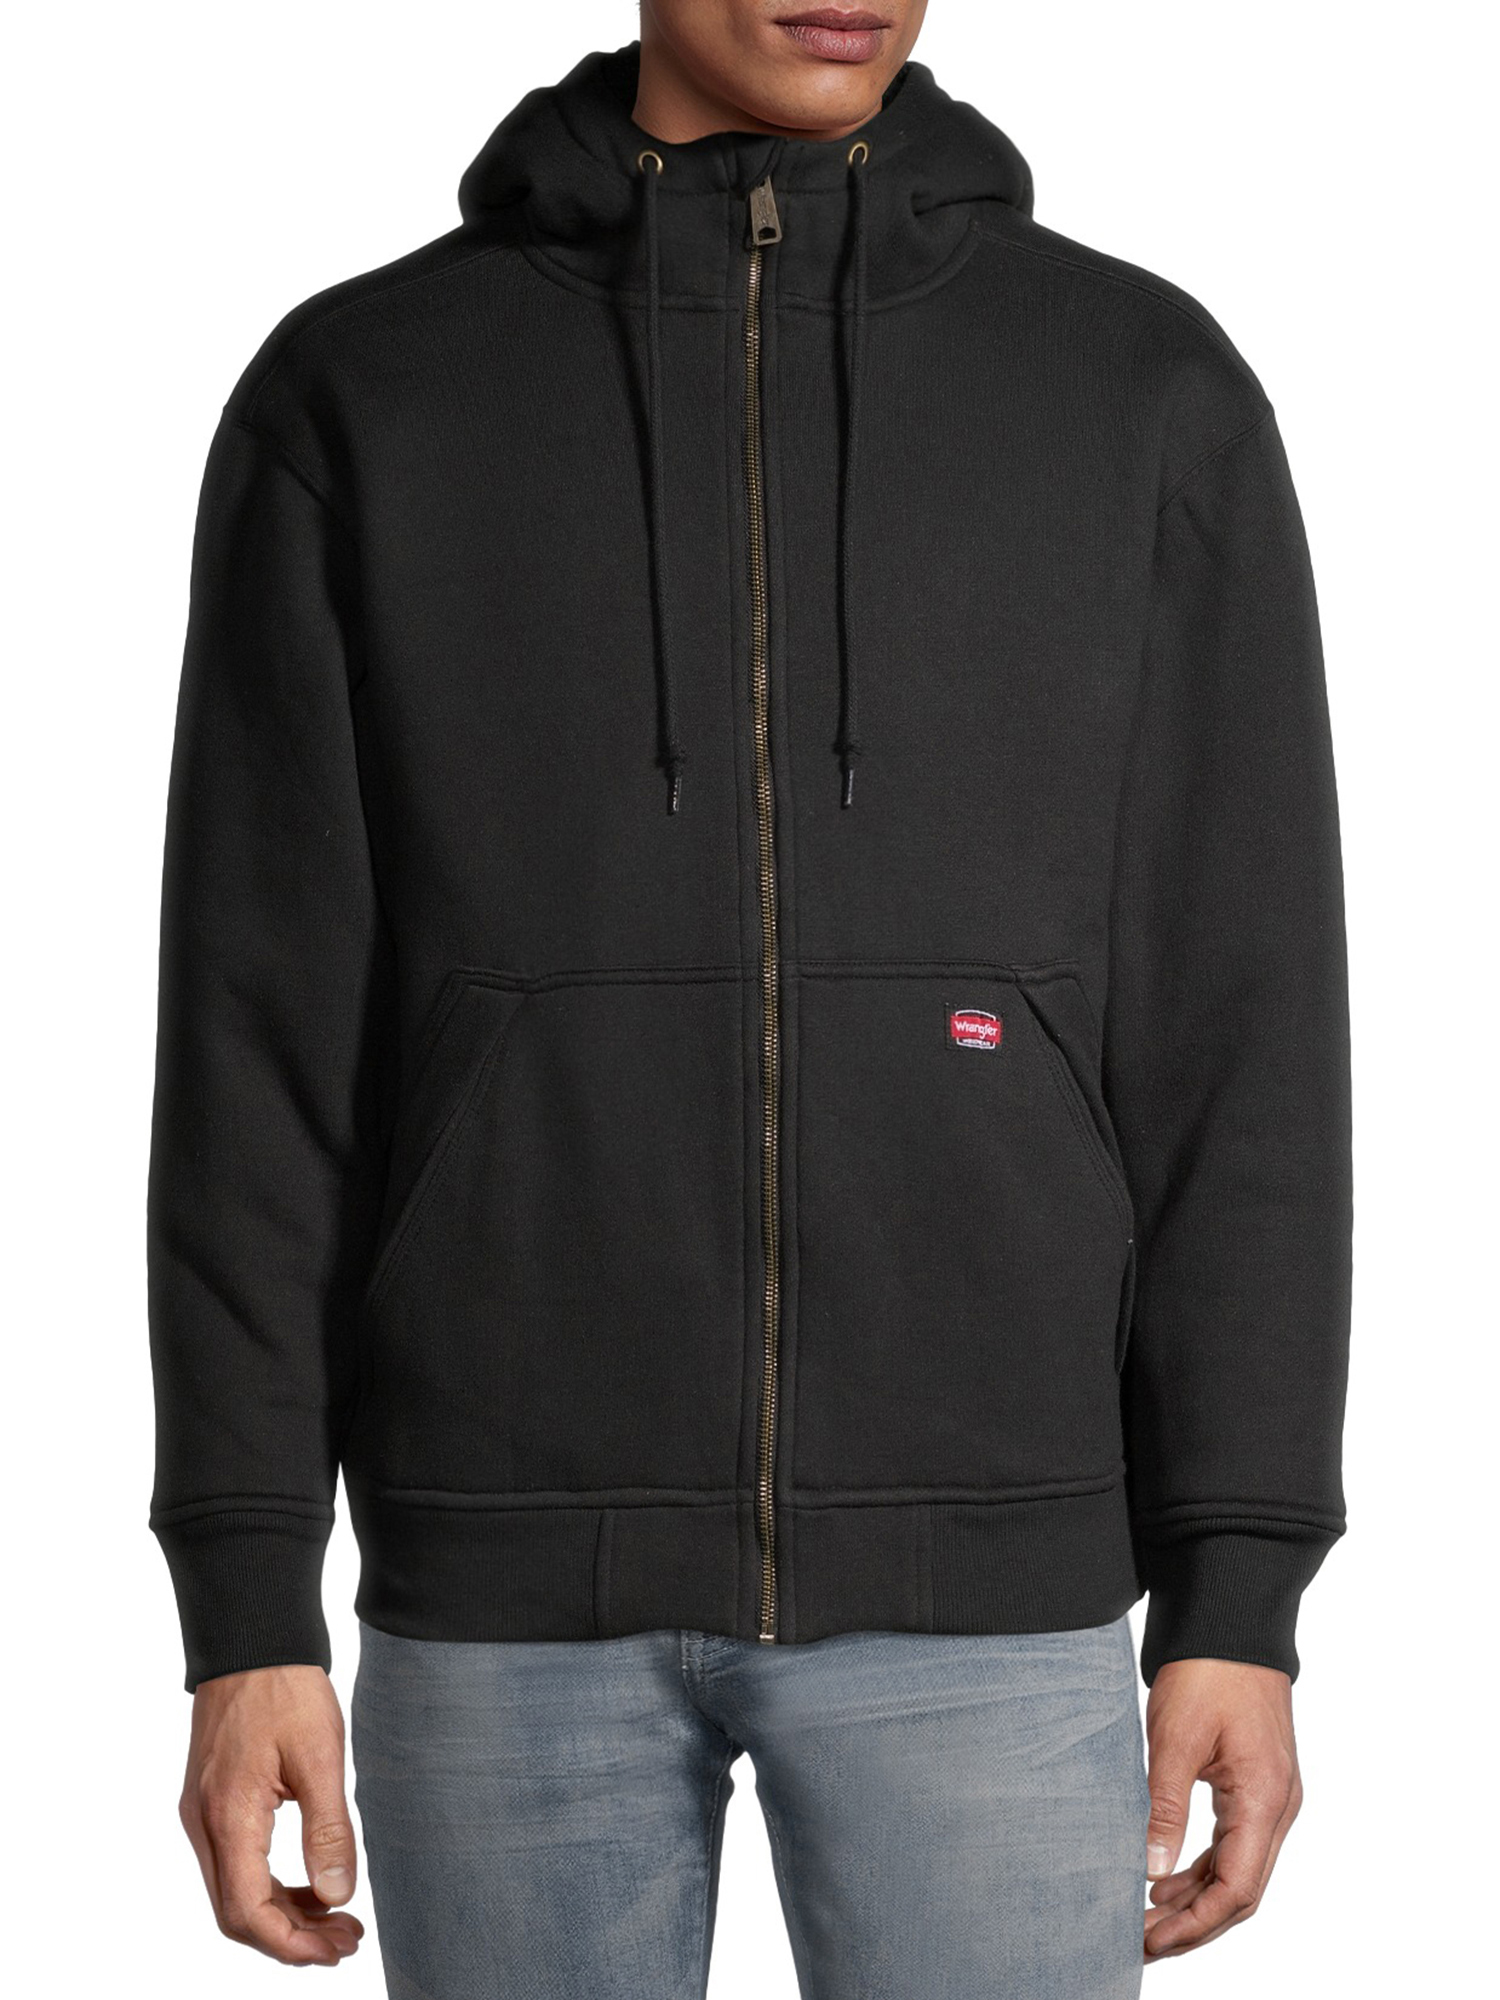 Many Styles ChoiceApparel Mens Full Zip Up Sweaters with Inside Lining